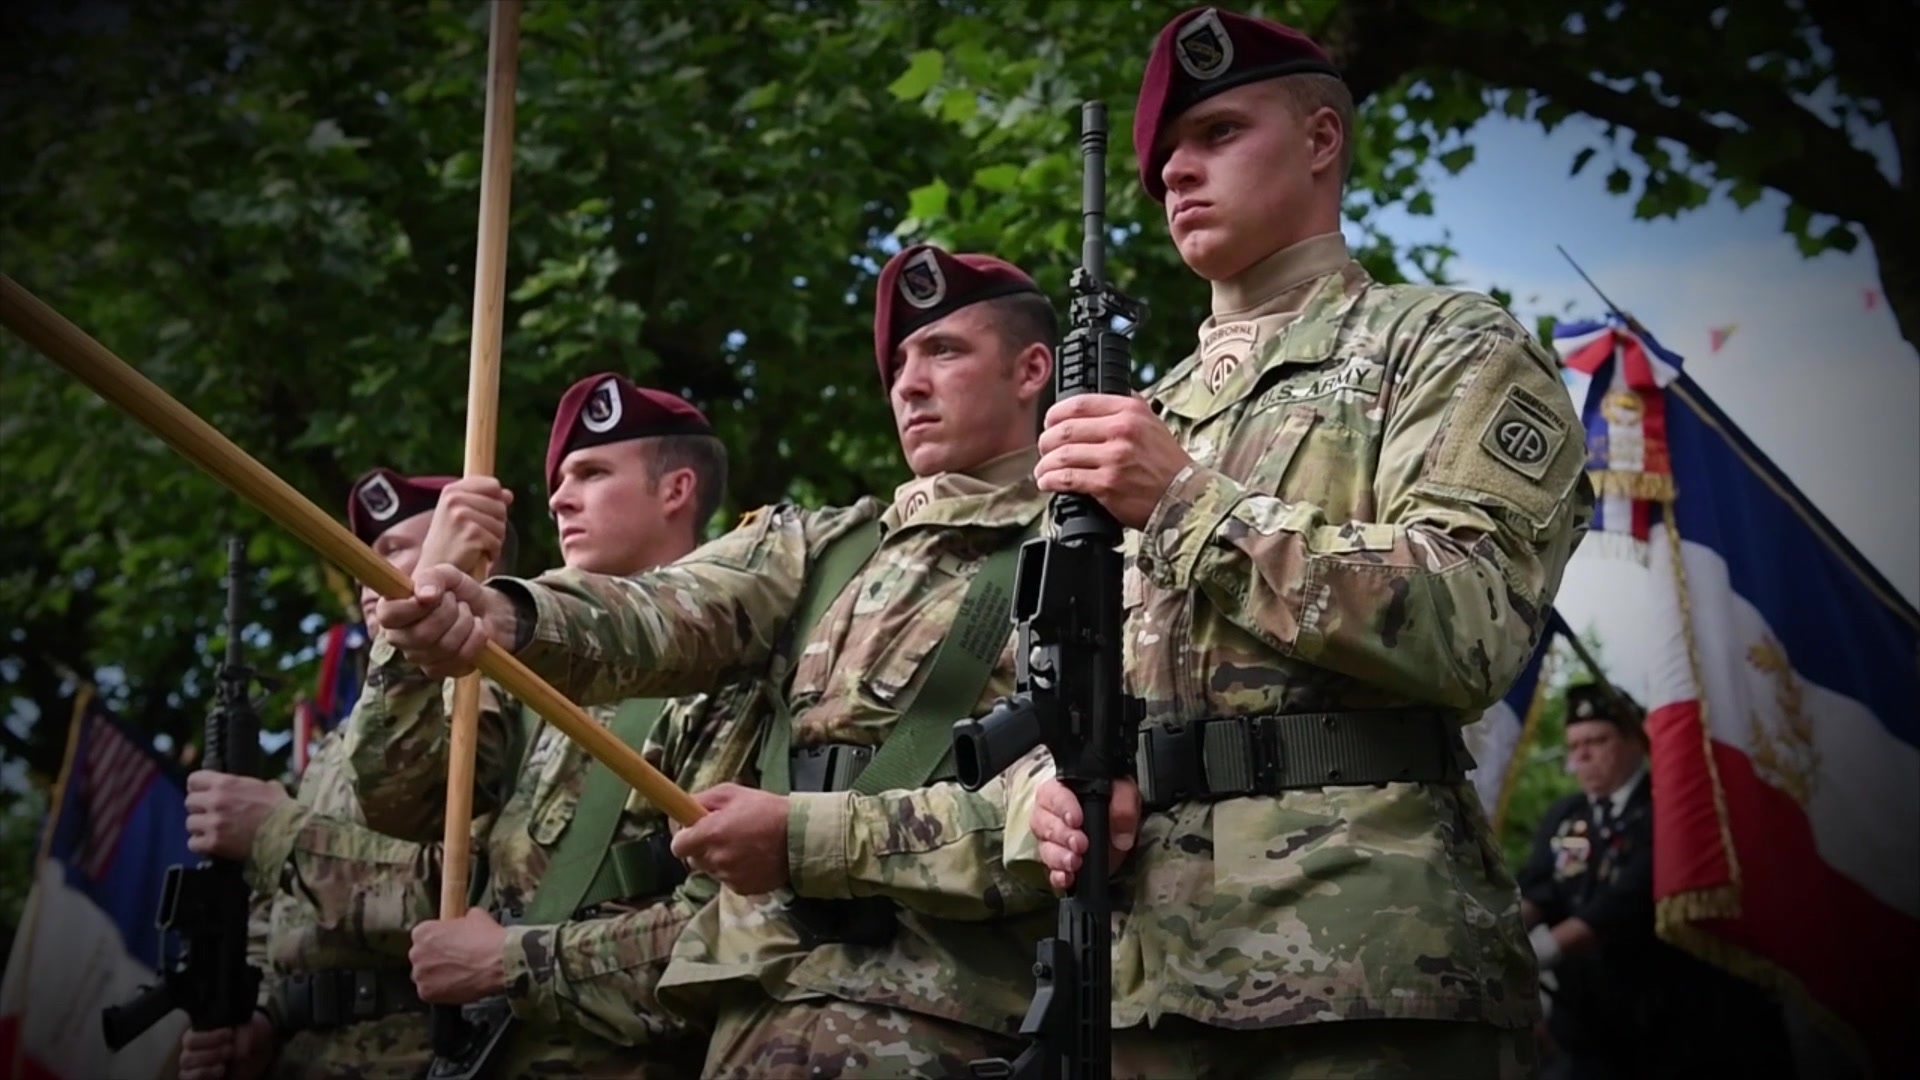 Soldiers attend an outdoor memorial ceremony.